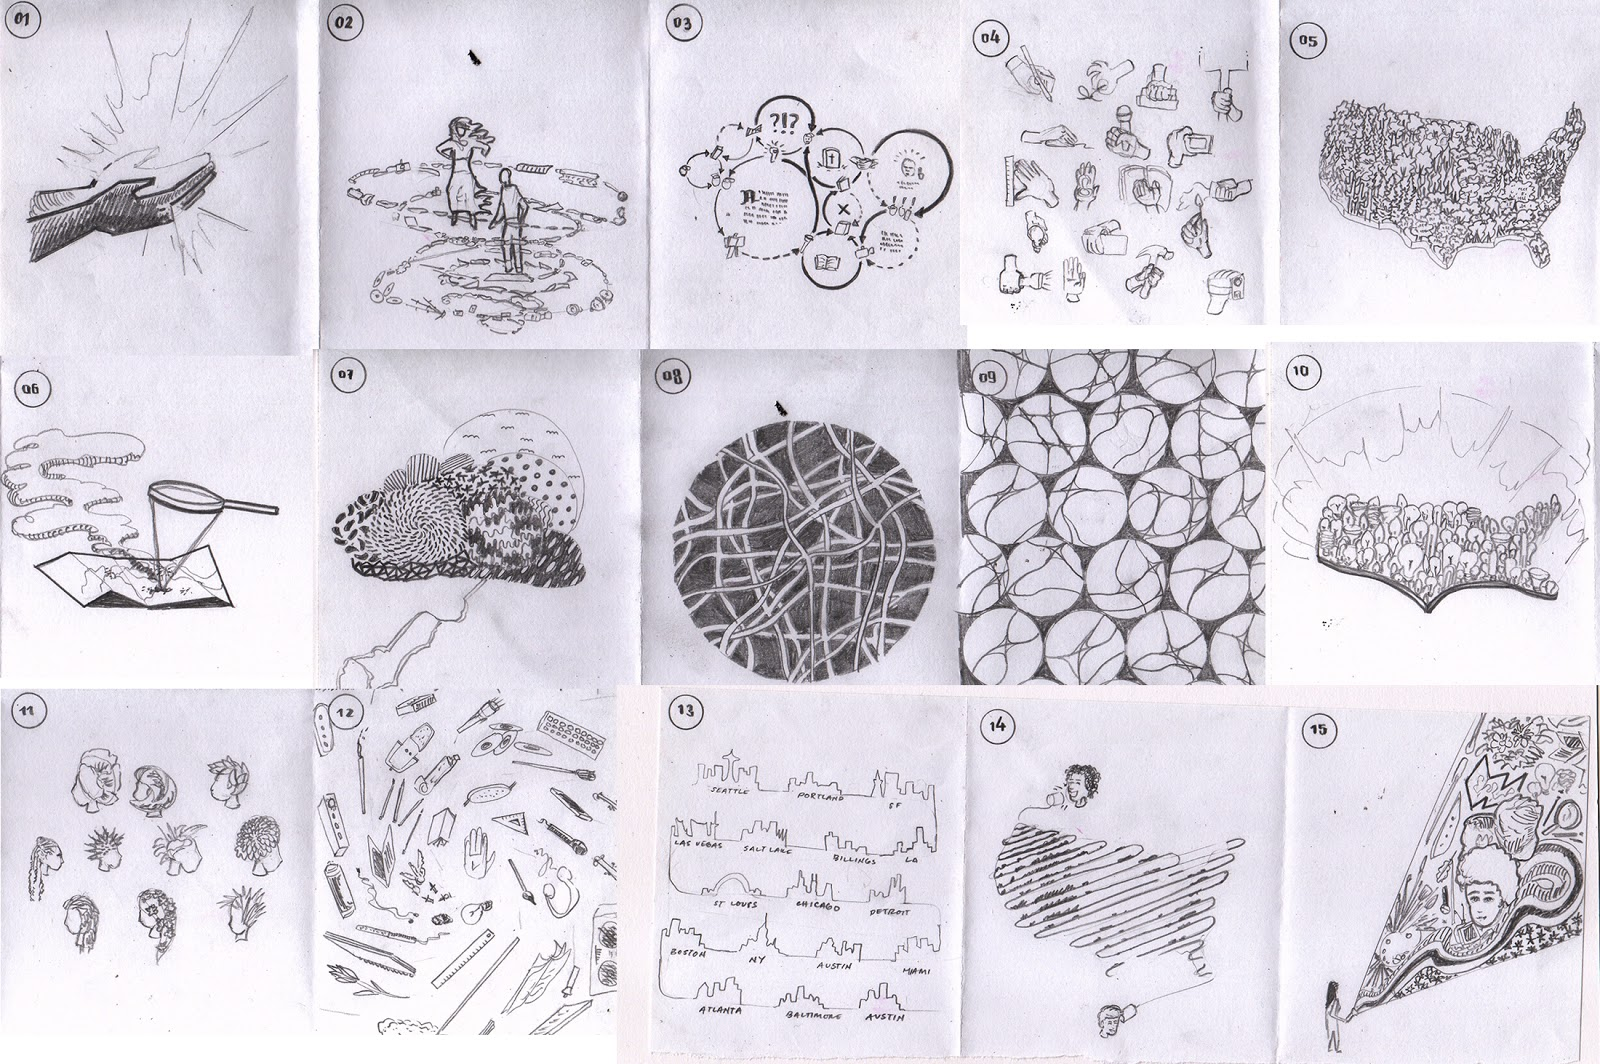 Twelve sketches of different possible looks for the poster -- mostly of a map of the United States covered by objects, or of a central object surrounded by tools.